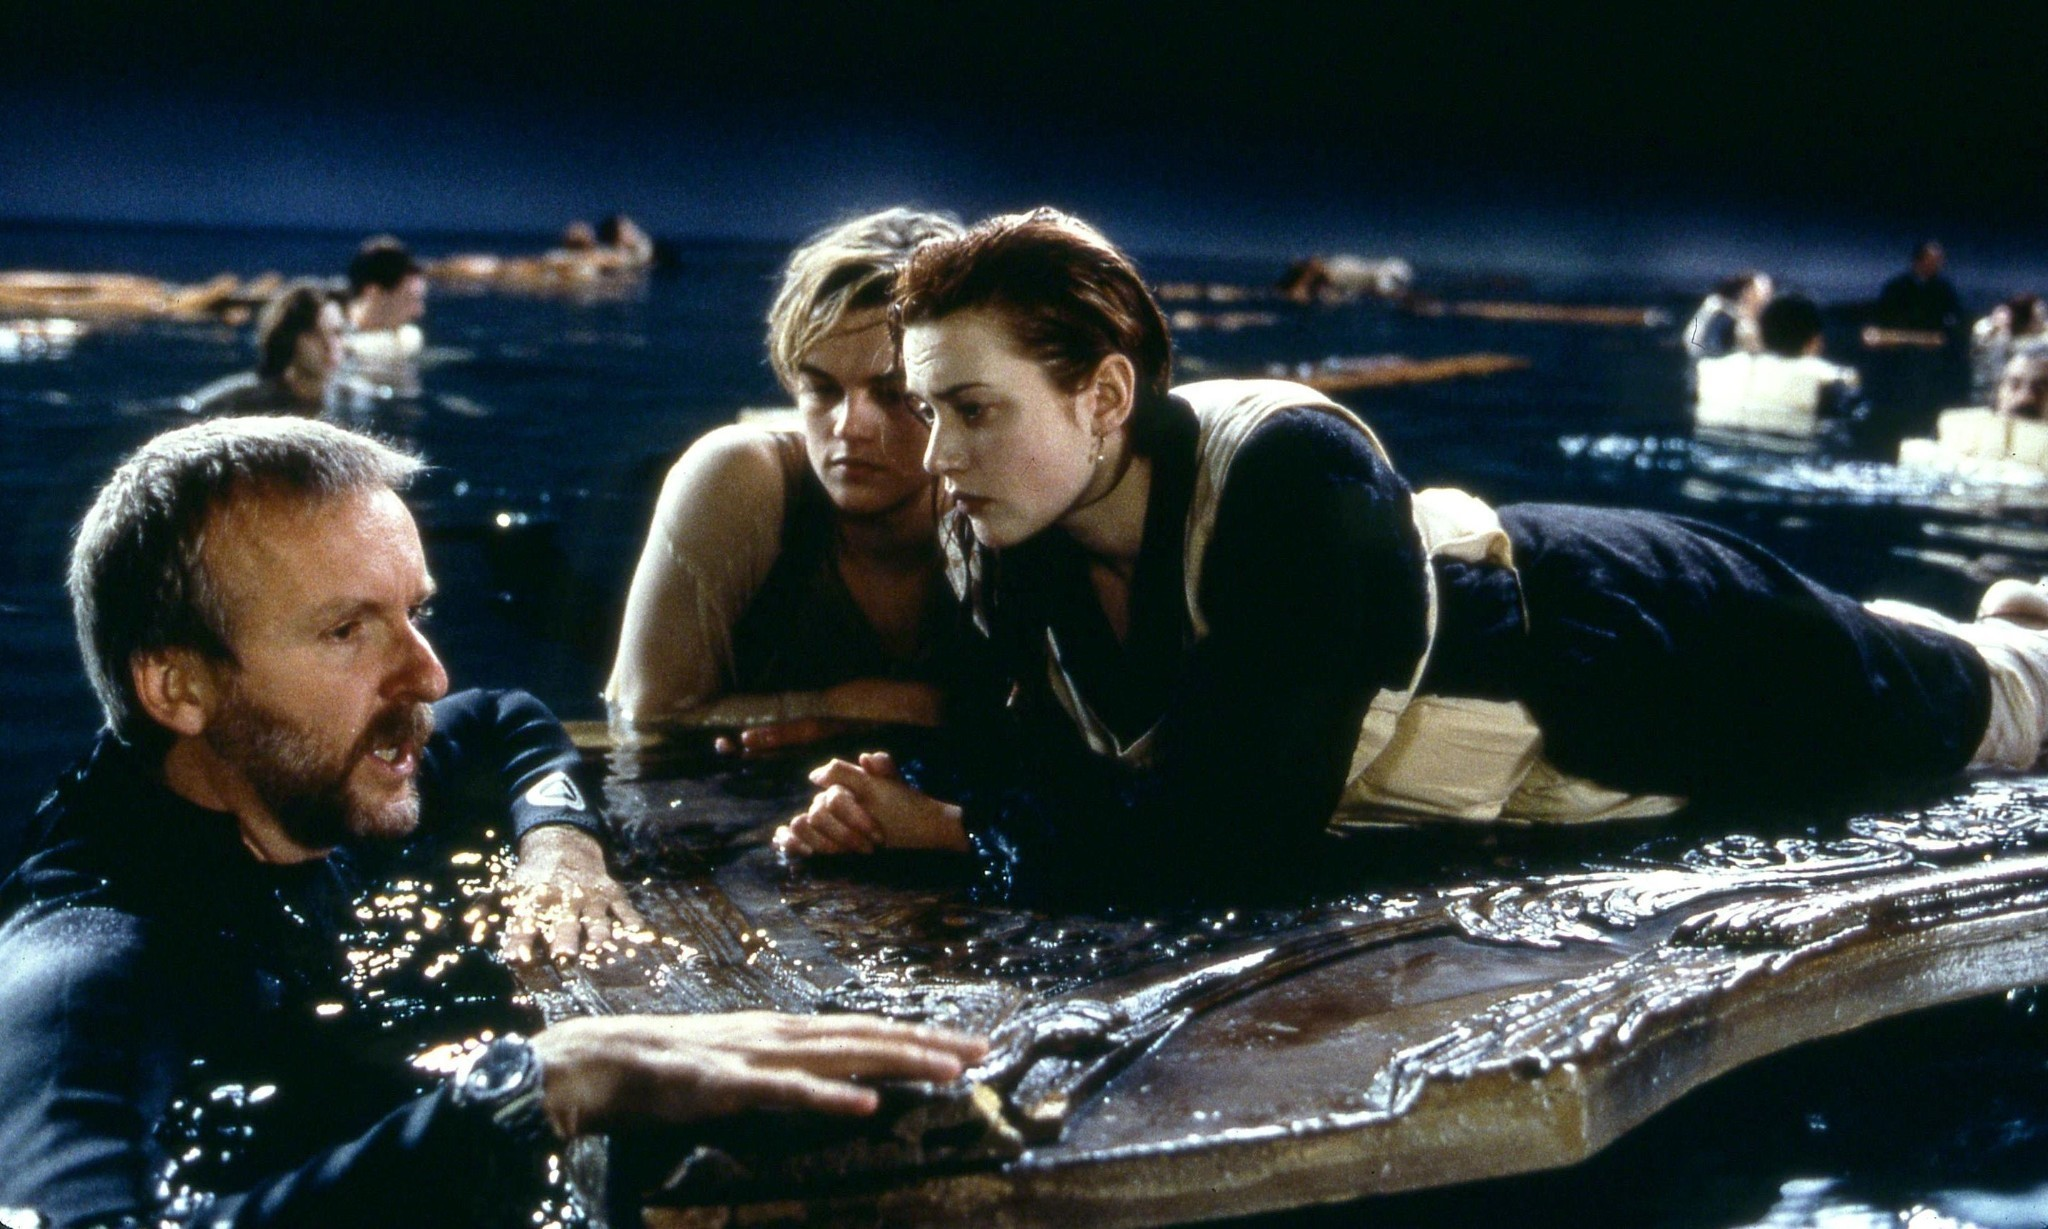 Kate Winslet breaks silence on Titanic raft ending: 'He could have actually fit'